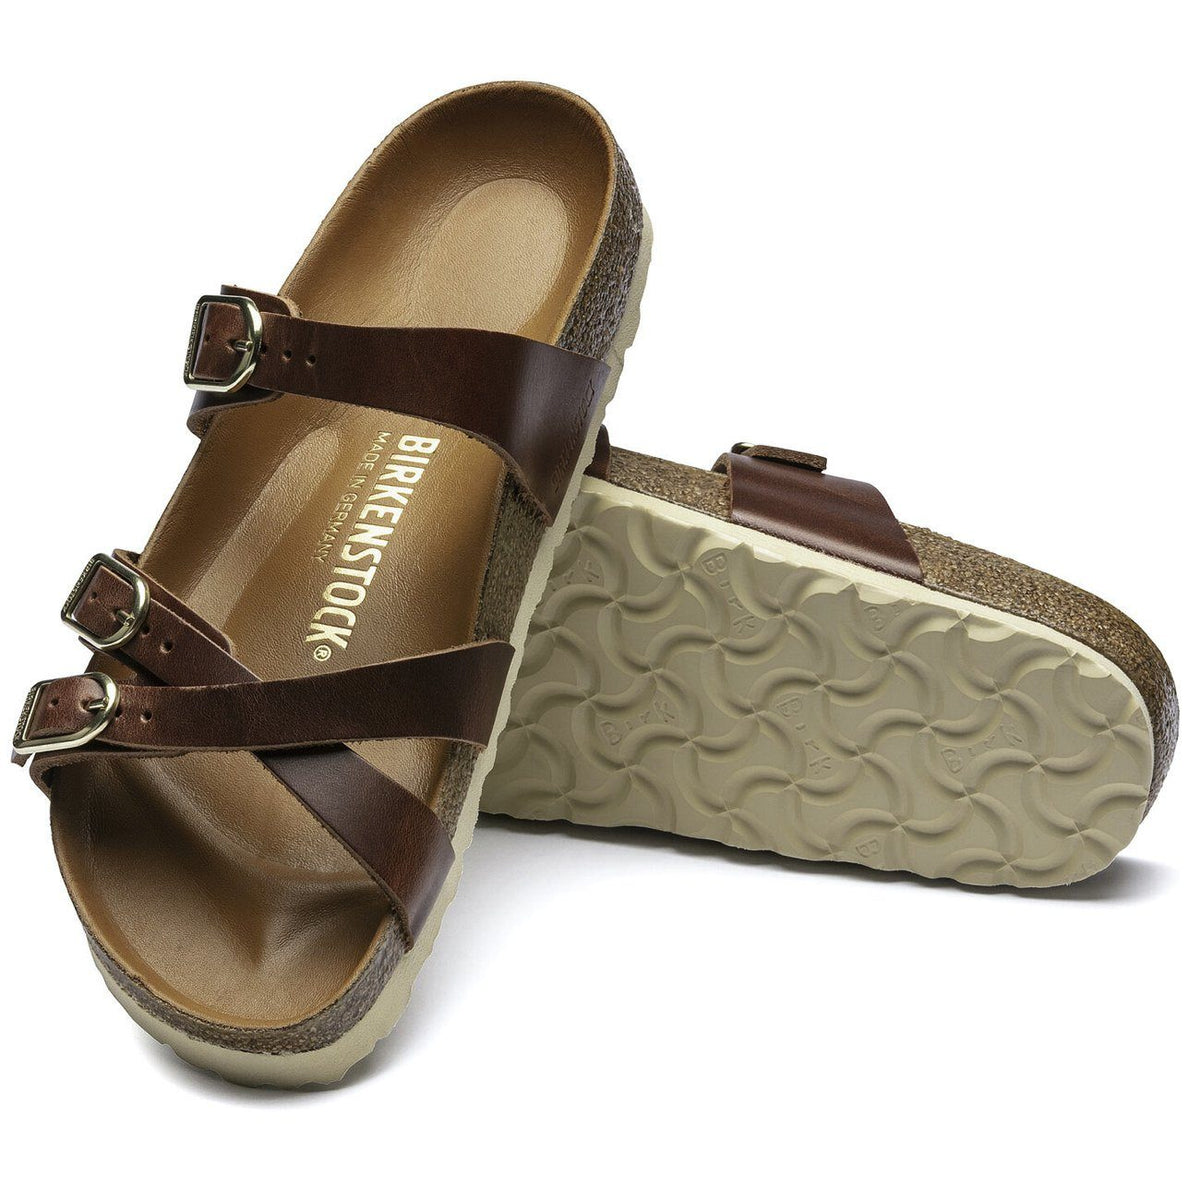 Birkenstock Seasonal, Franca, Oiled Leather, Regular Fit, Cognac Sandals Birkenstock Seasonal